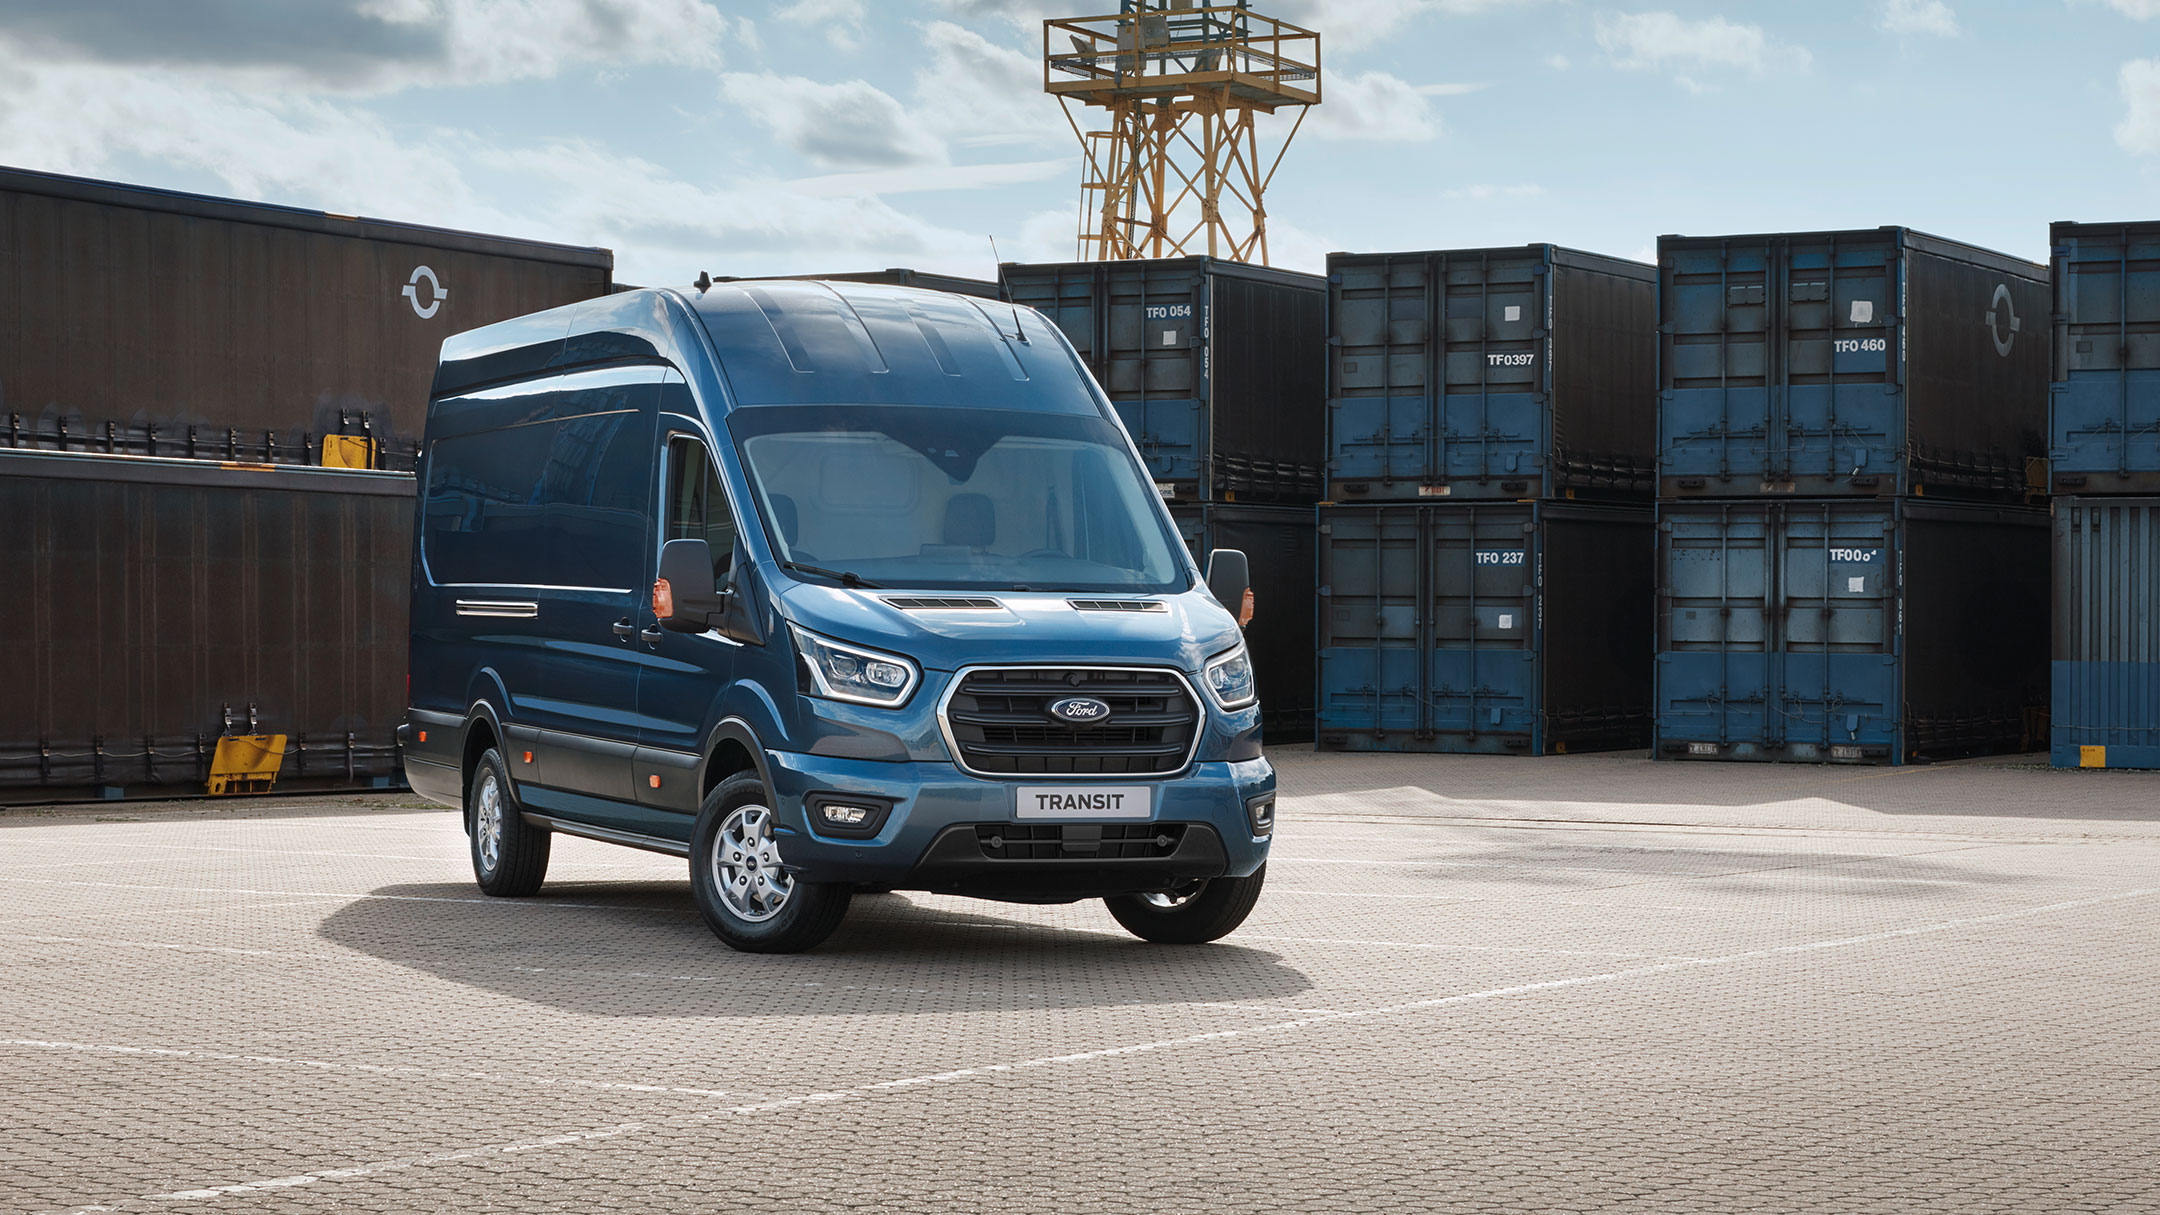 New Ford Transit Van Trail front view parked